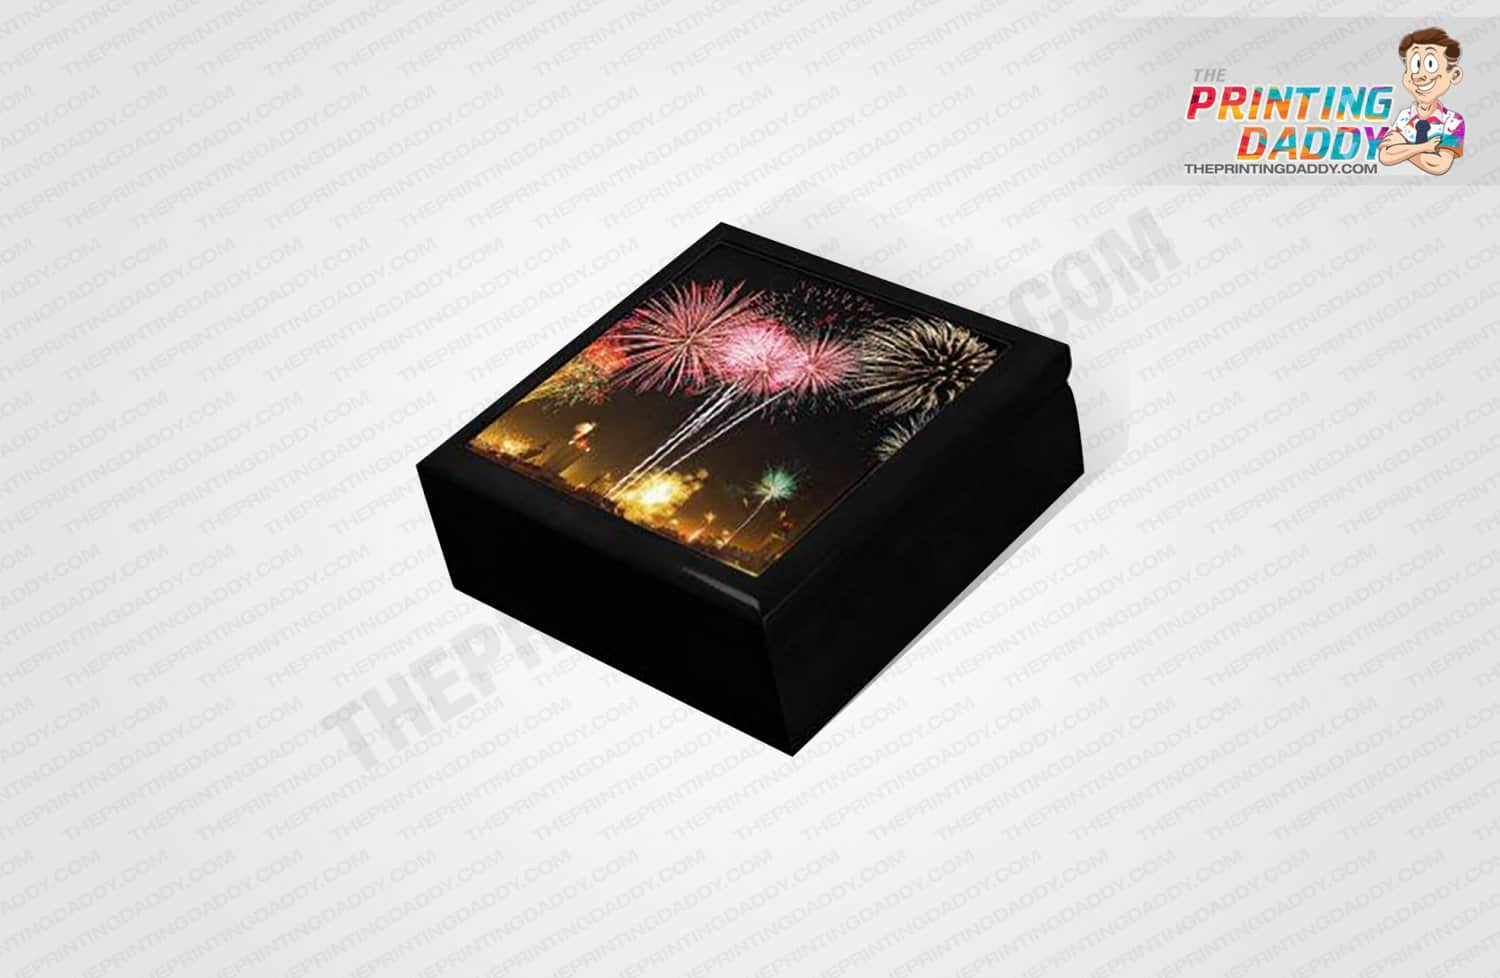 Black Firework Event Lid-Off Box The Printing Daddy